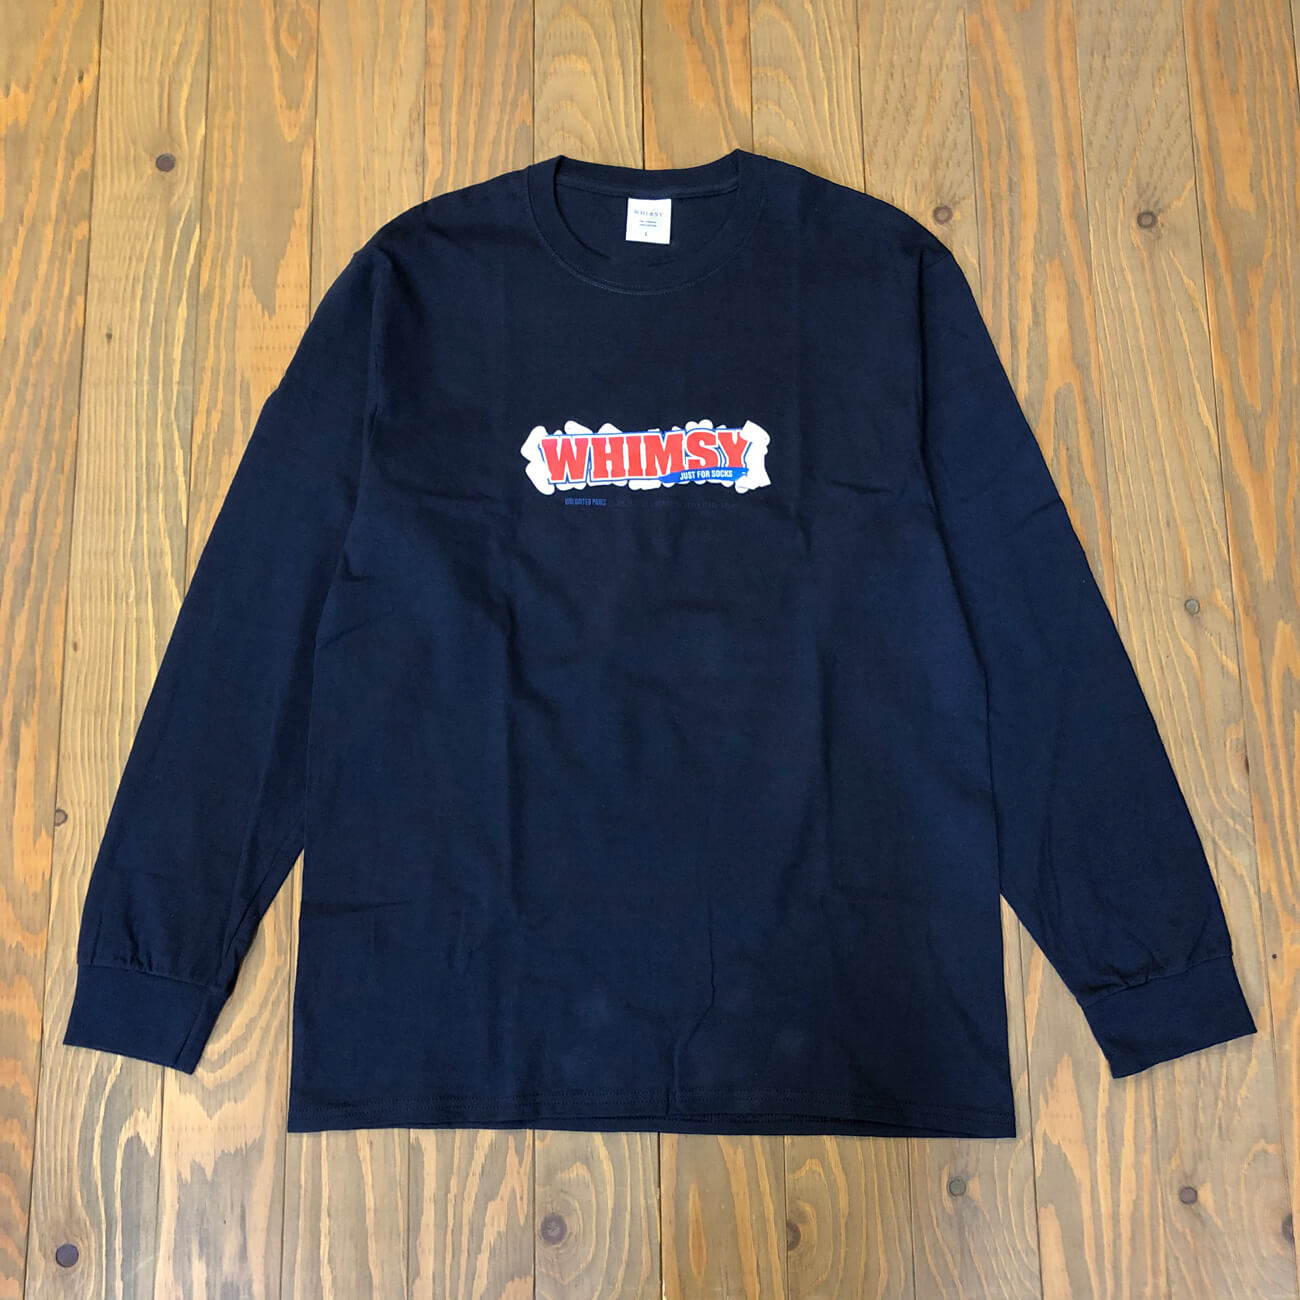 WHIMSY PAY DAY L/S TEE NAVY